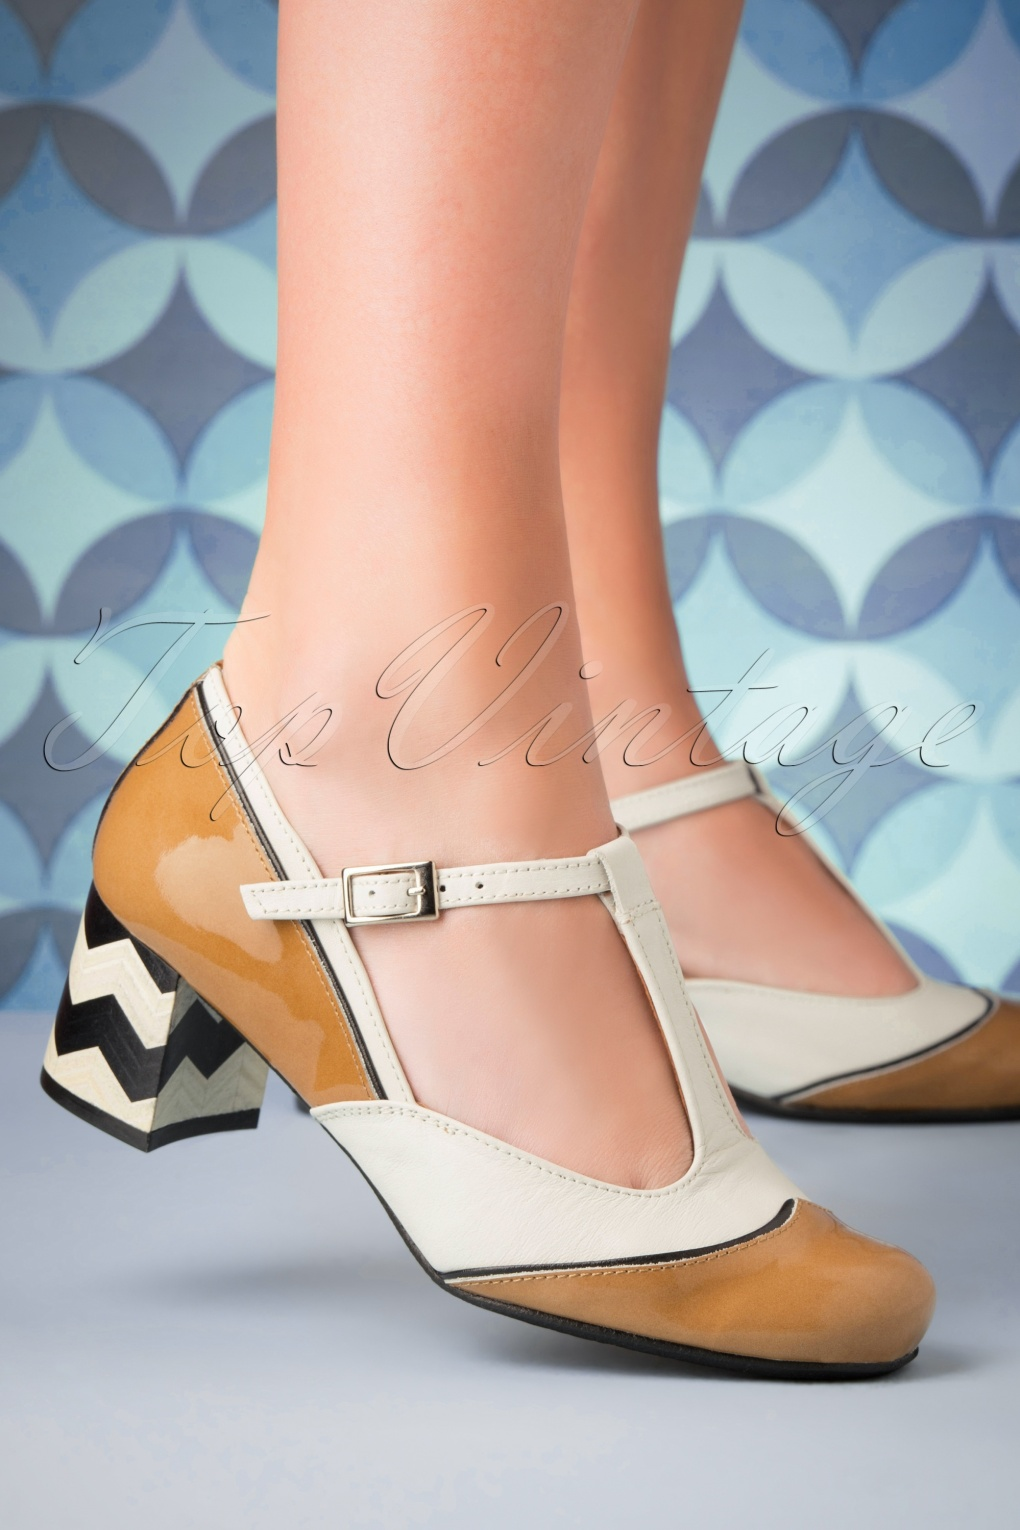 1960s Style Dresses, Clothing, Shoes UK 60s Vintage Cat Leather Pumps in Camel £108.47 AT vintagedancer.com